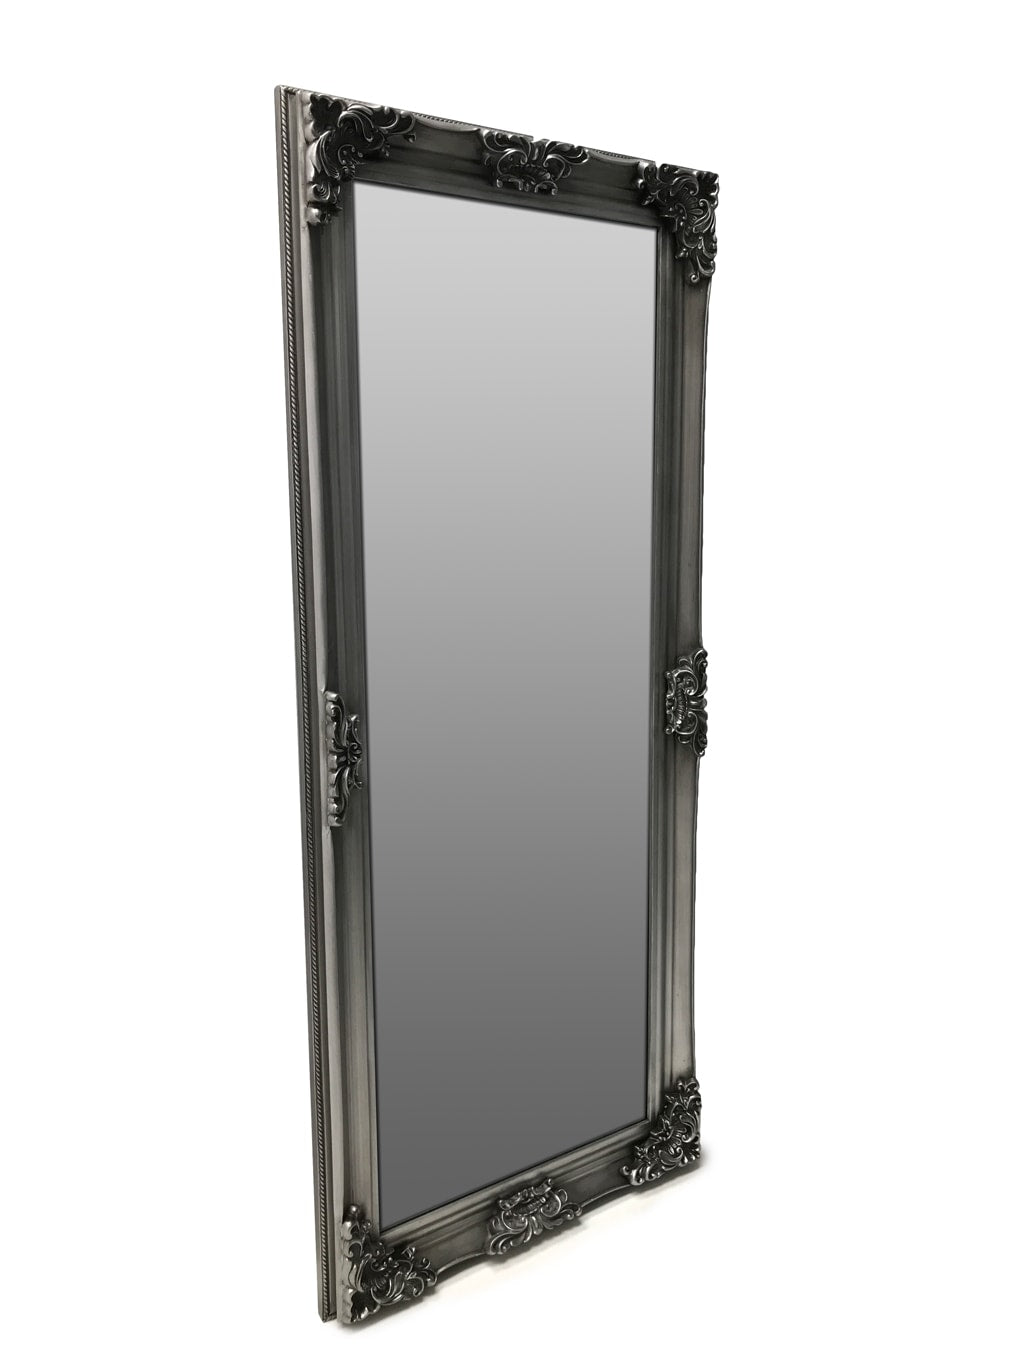 Standing Mirror with antiqued silver frame, vie from front right angle